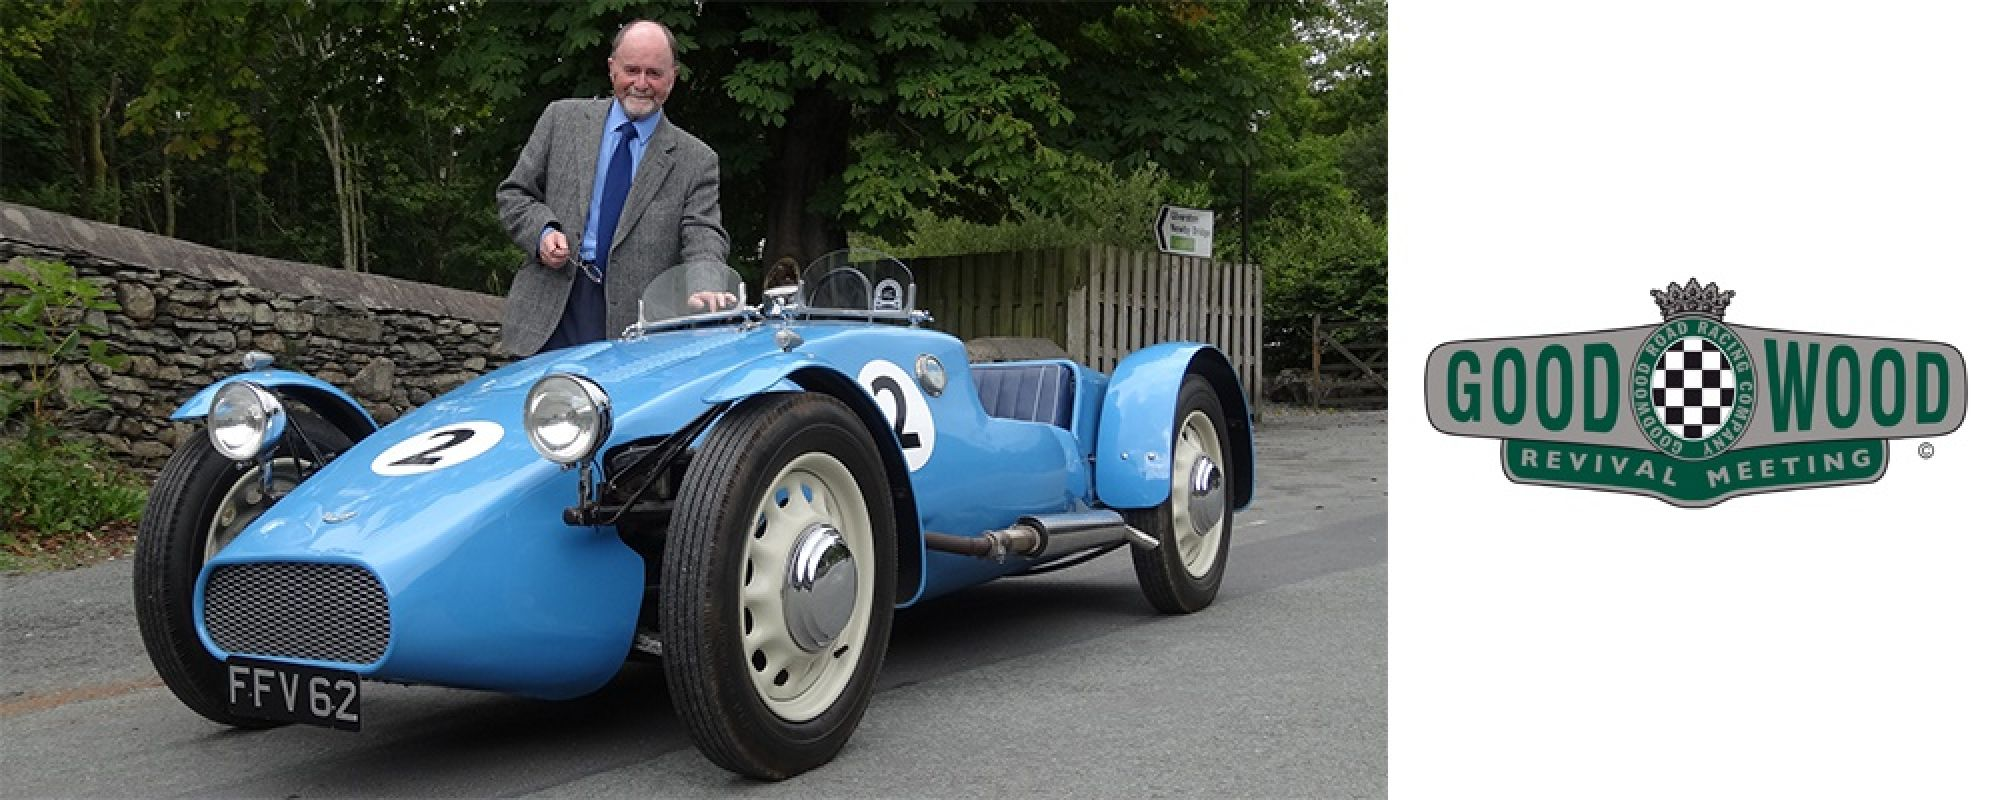 Bill bewley, Director of the Lakeland Motor Museum next t o the TVR Number 2